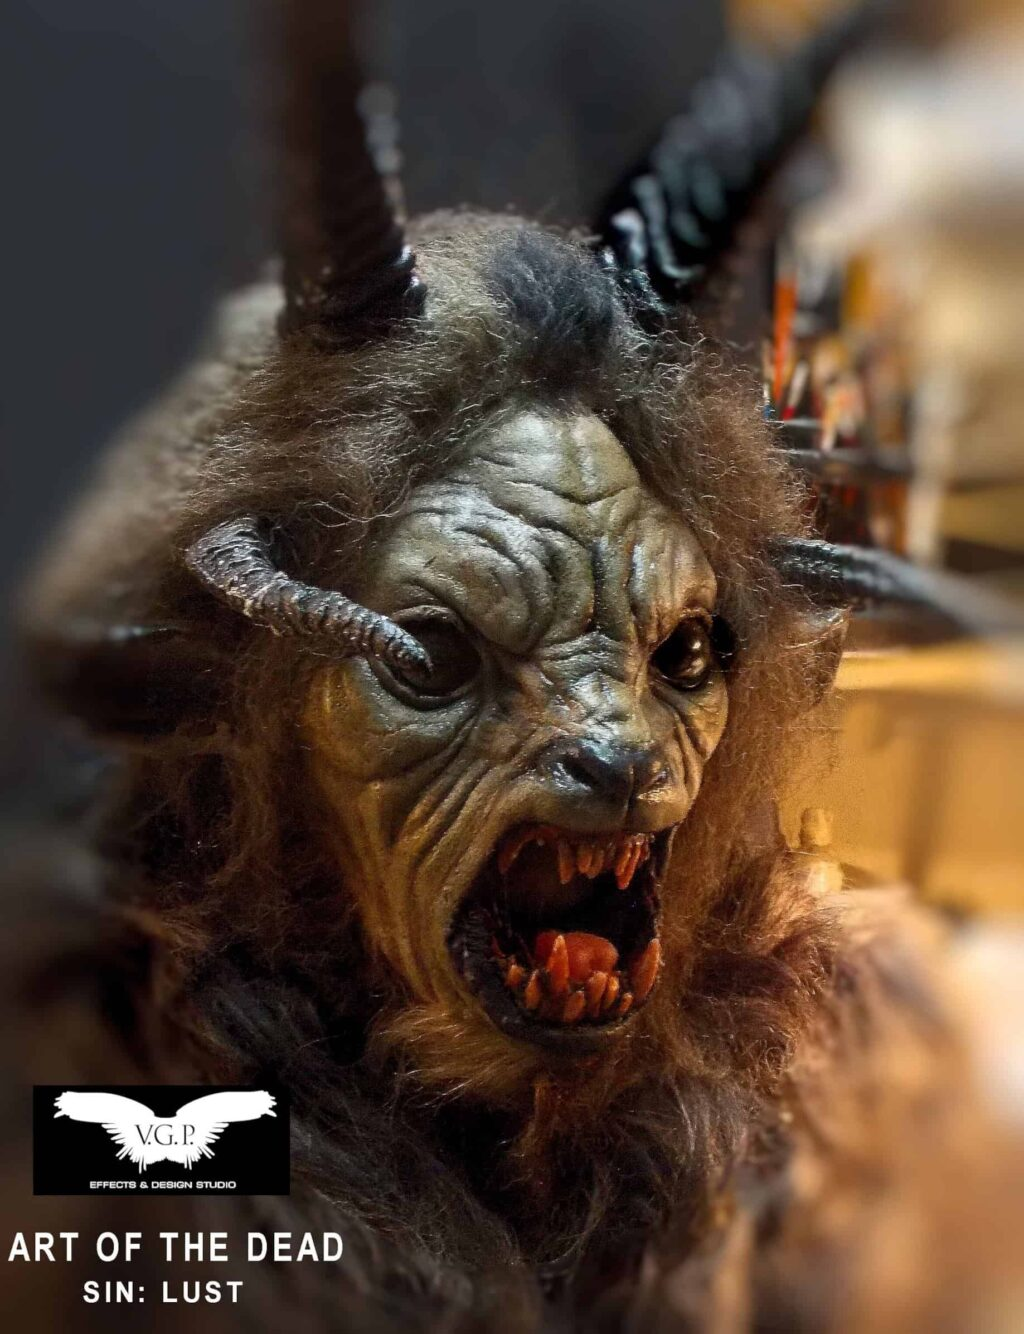 GOAT 1 1024x1334 - Vincent Guastini: From Making Monsters to Directing & Producing + Image Gallery